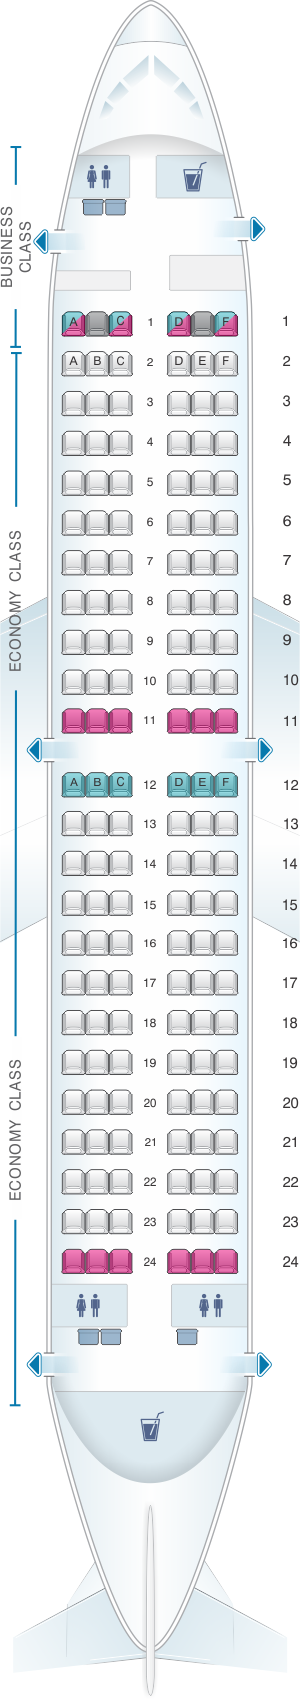 Seat map for airberlin Boeing B737 700